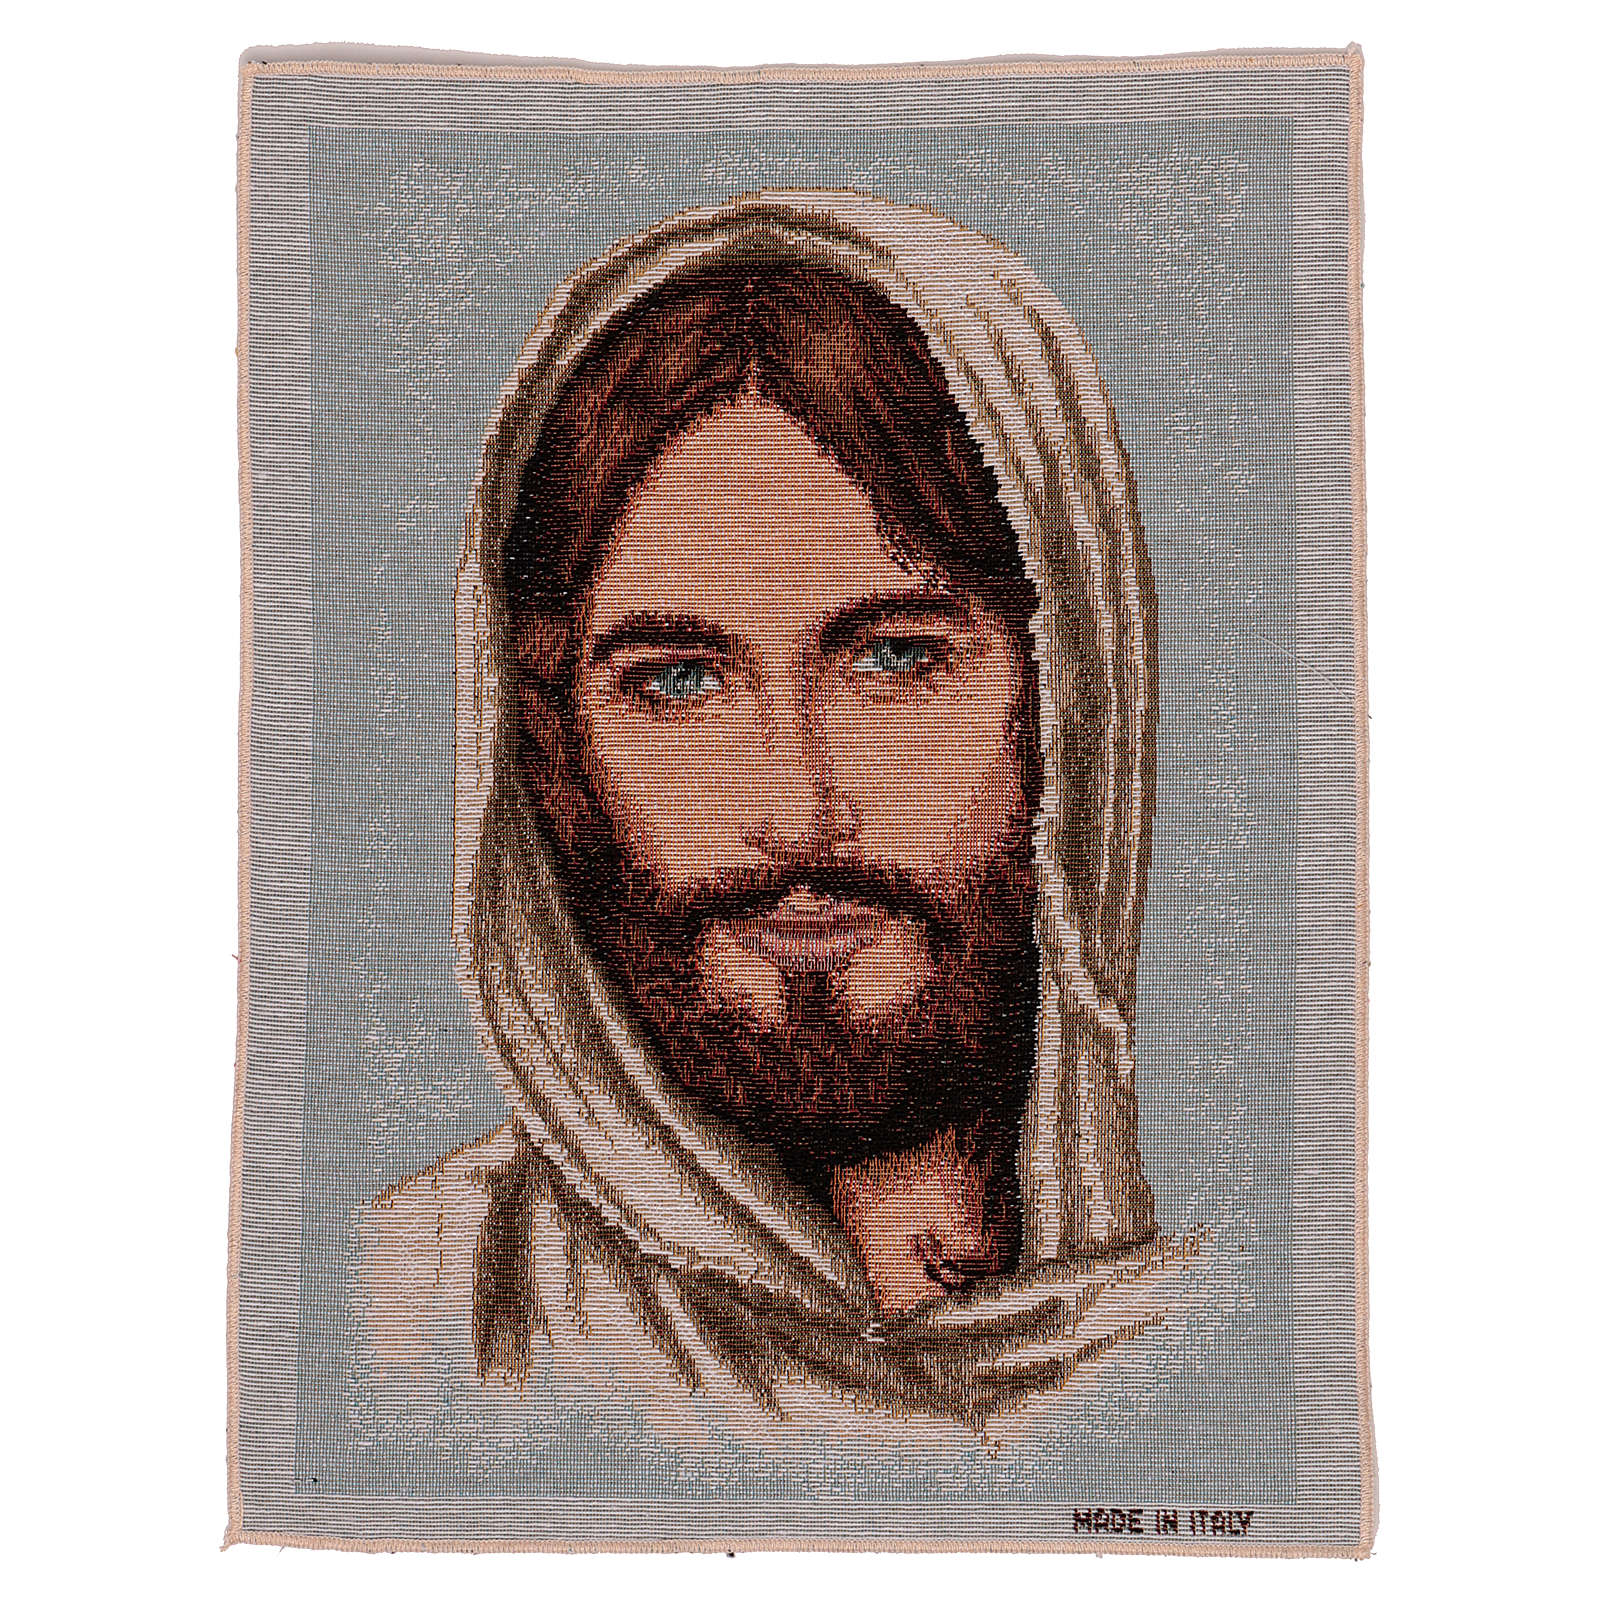 Jesus Christ's face with hood tapestry 40x30 cm 3